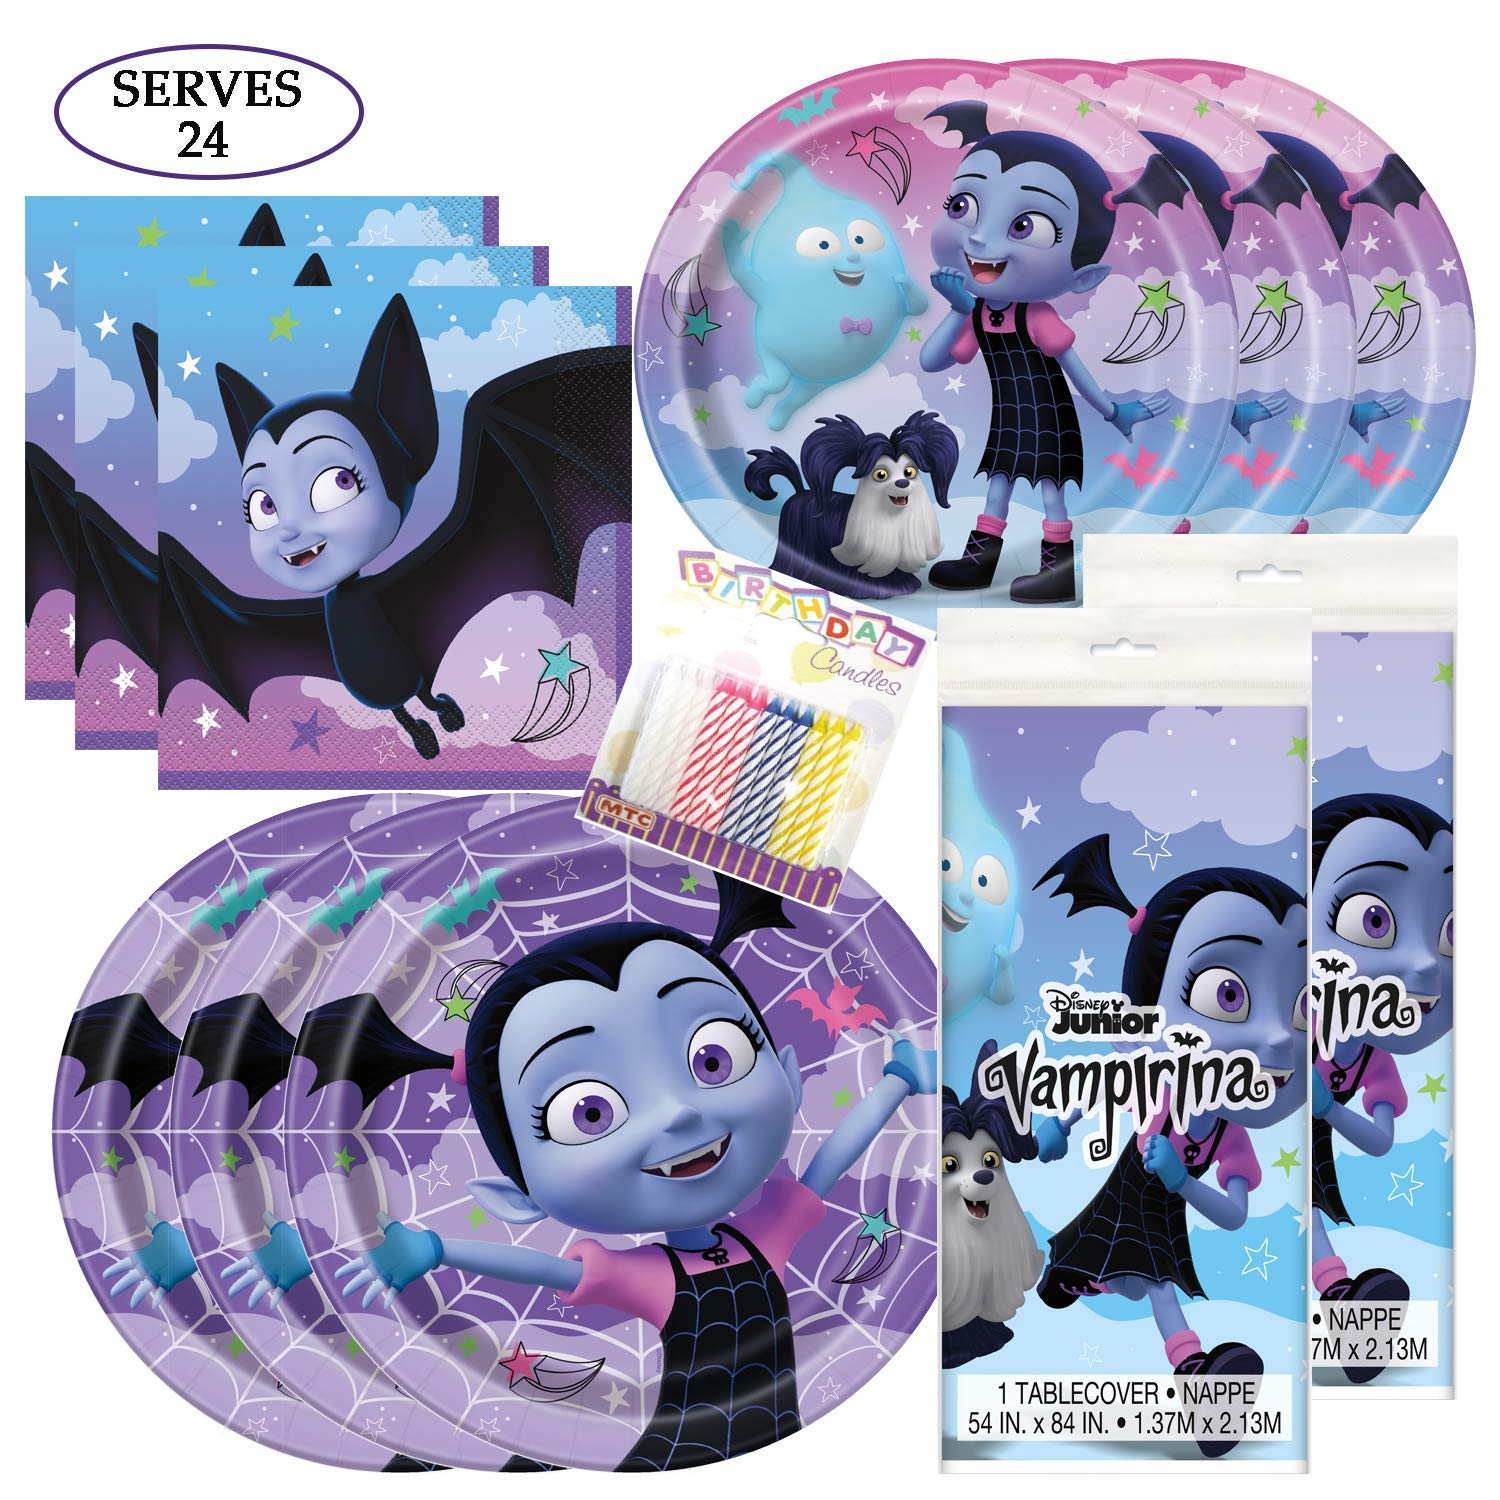 Vampirina Themed Party Pack - Includes 24 9'' and 24 7'' Paper Plates, 48 Luncheon Napkins, 2 Matching Table Cloth, Plus 24 Birthday Candles - Serves 24